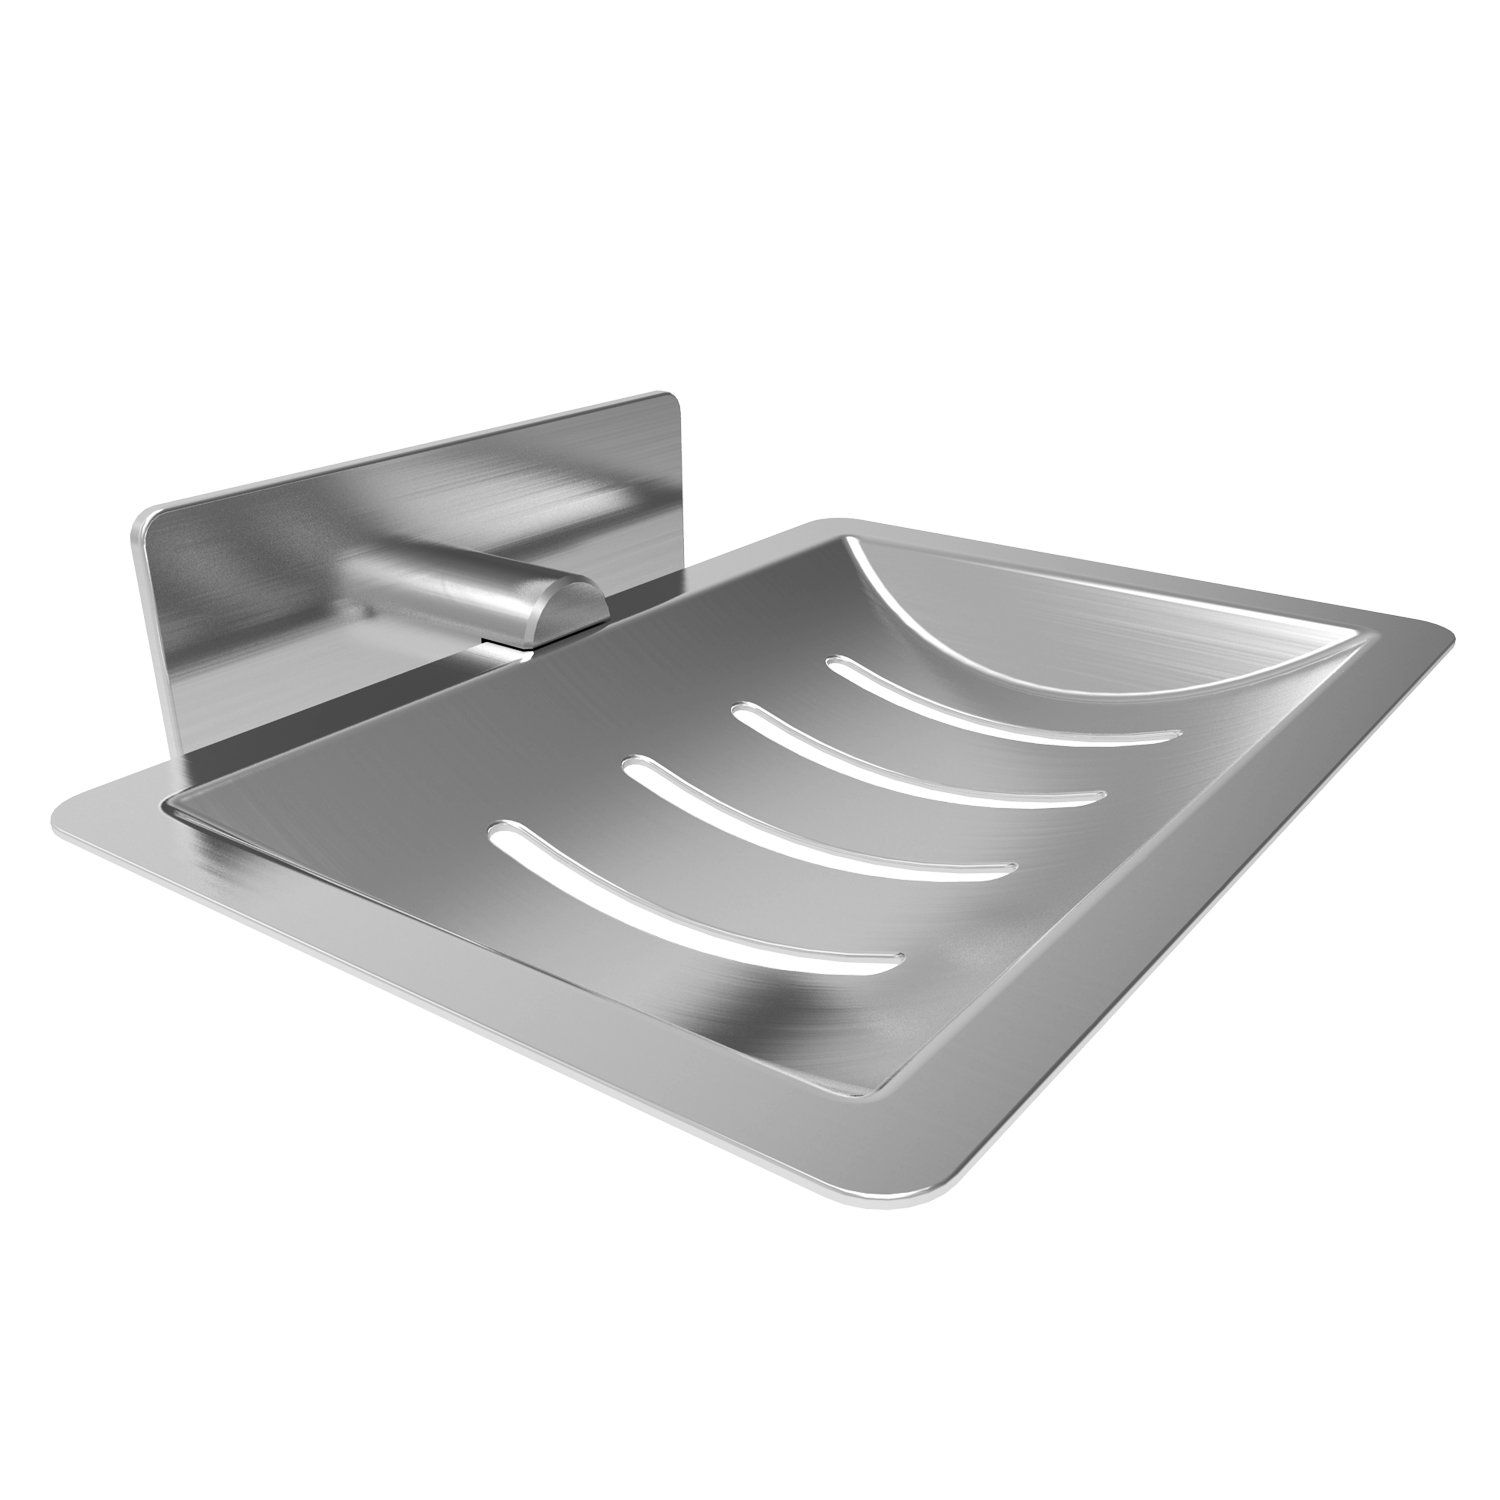 Soap Dish E-Ling Adhesive Soap Holder Brushed Soap Dish Holder for Bathroom/Kitchen /Tile /Shower Wall Mounted